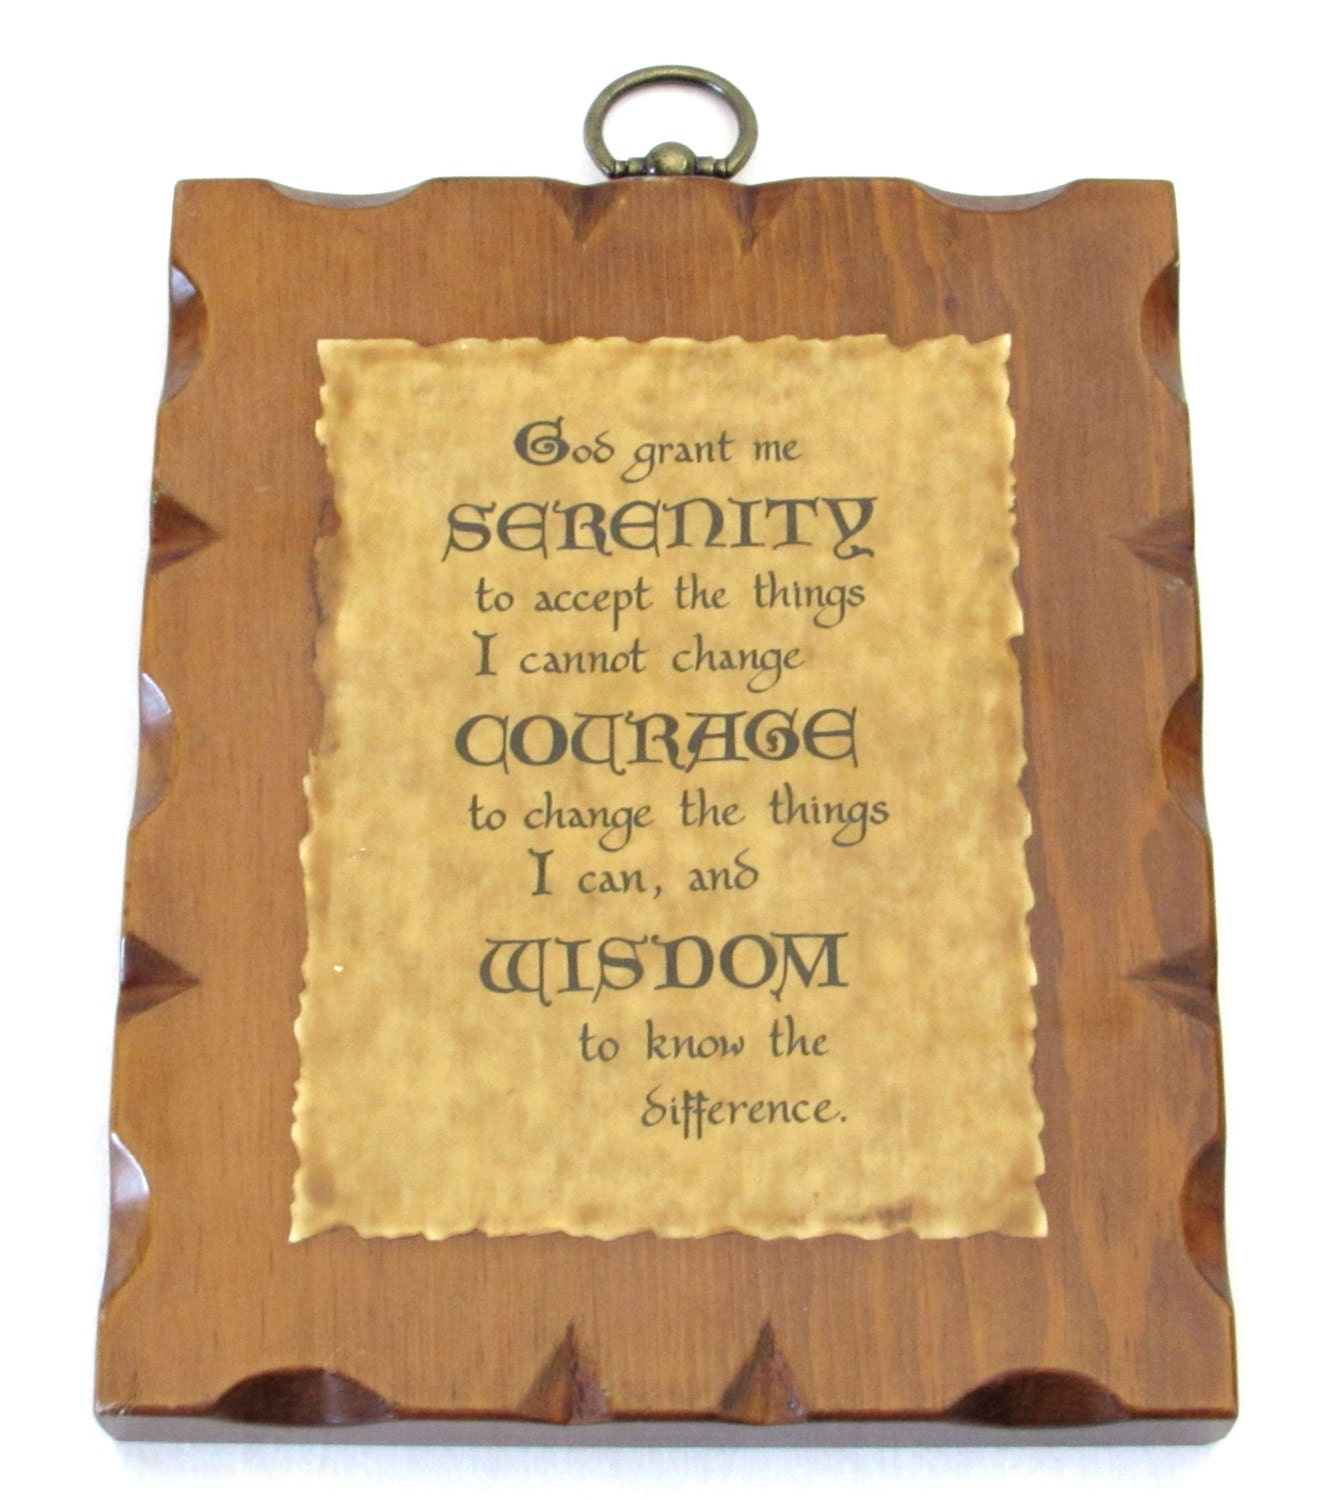 Peaceful Serenity Prayer Wall Hanging: God Grant me Serenity to ...